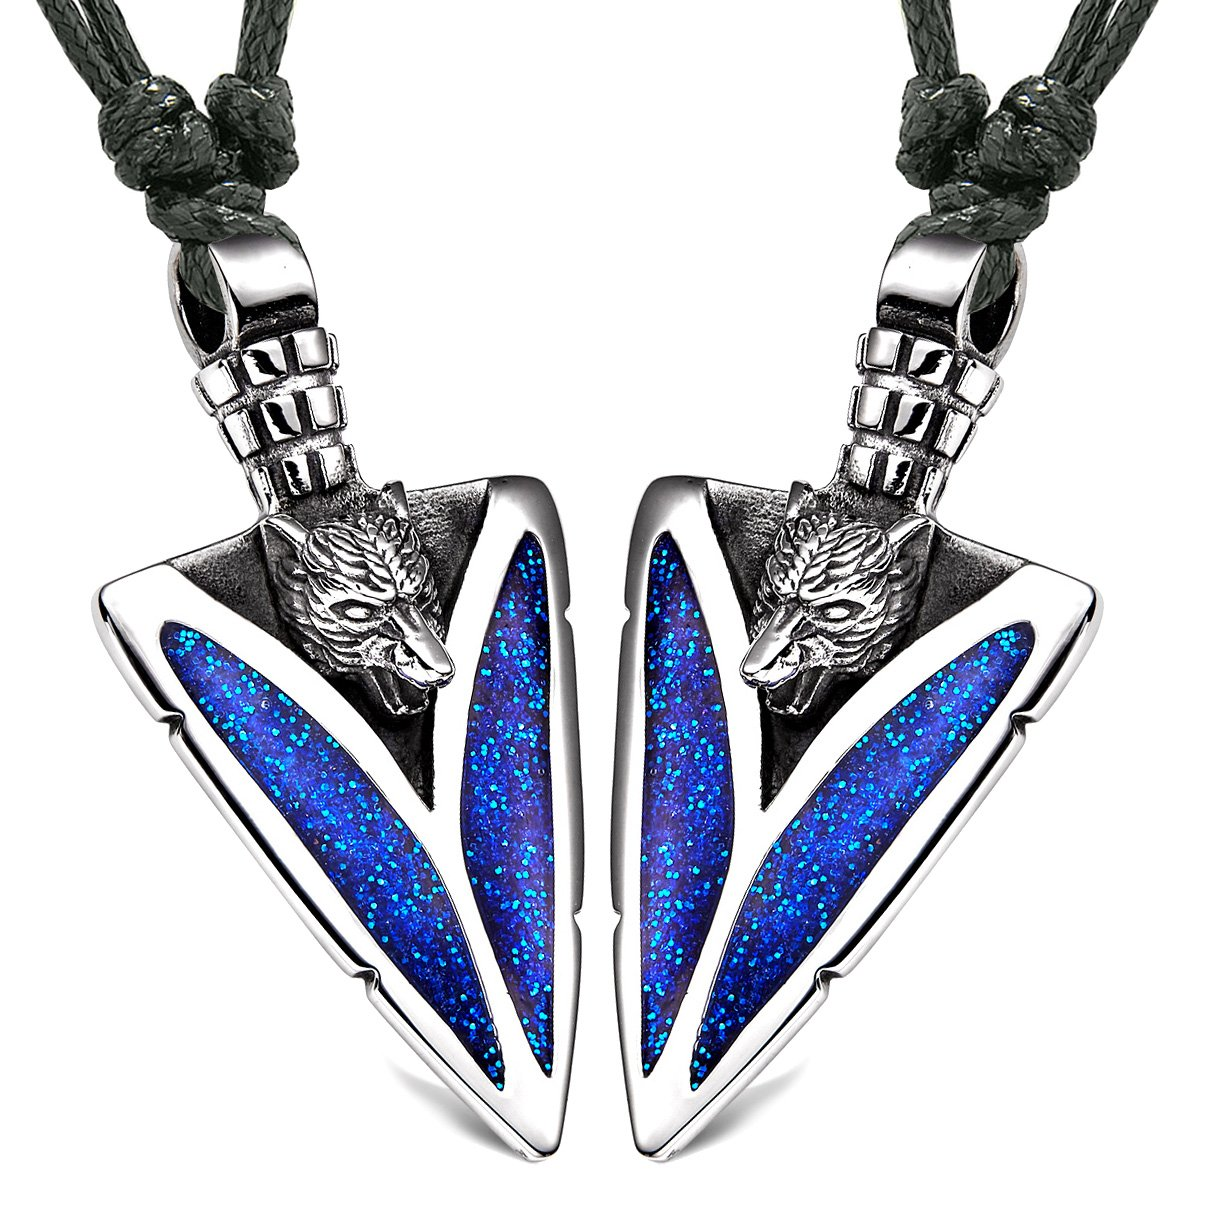 Arrowhead Howling Wolf Love Couples or Best Friends Amulets Set Sparkling Royal Blue Adjustable Necklaces